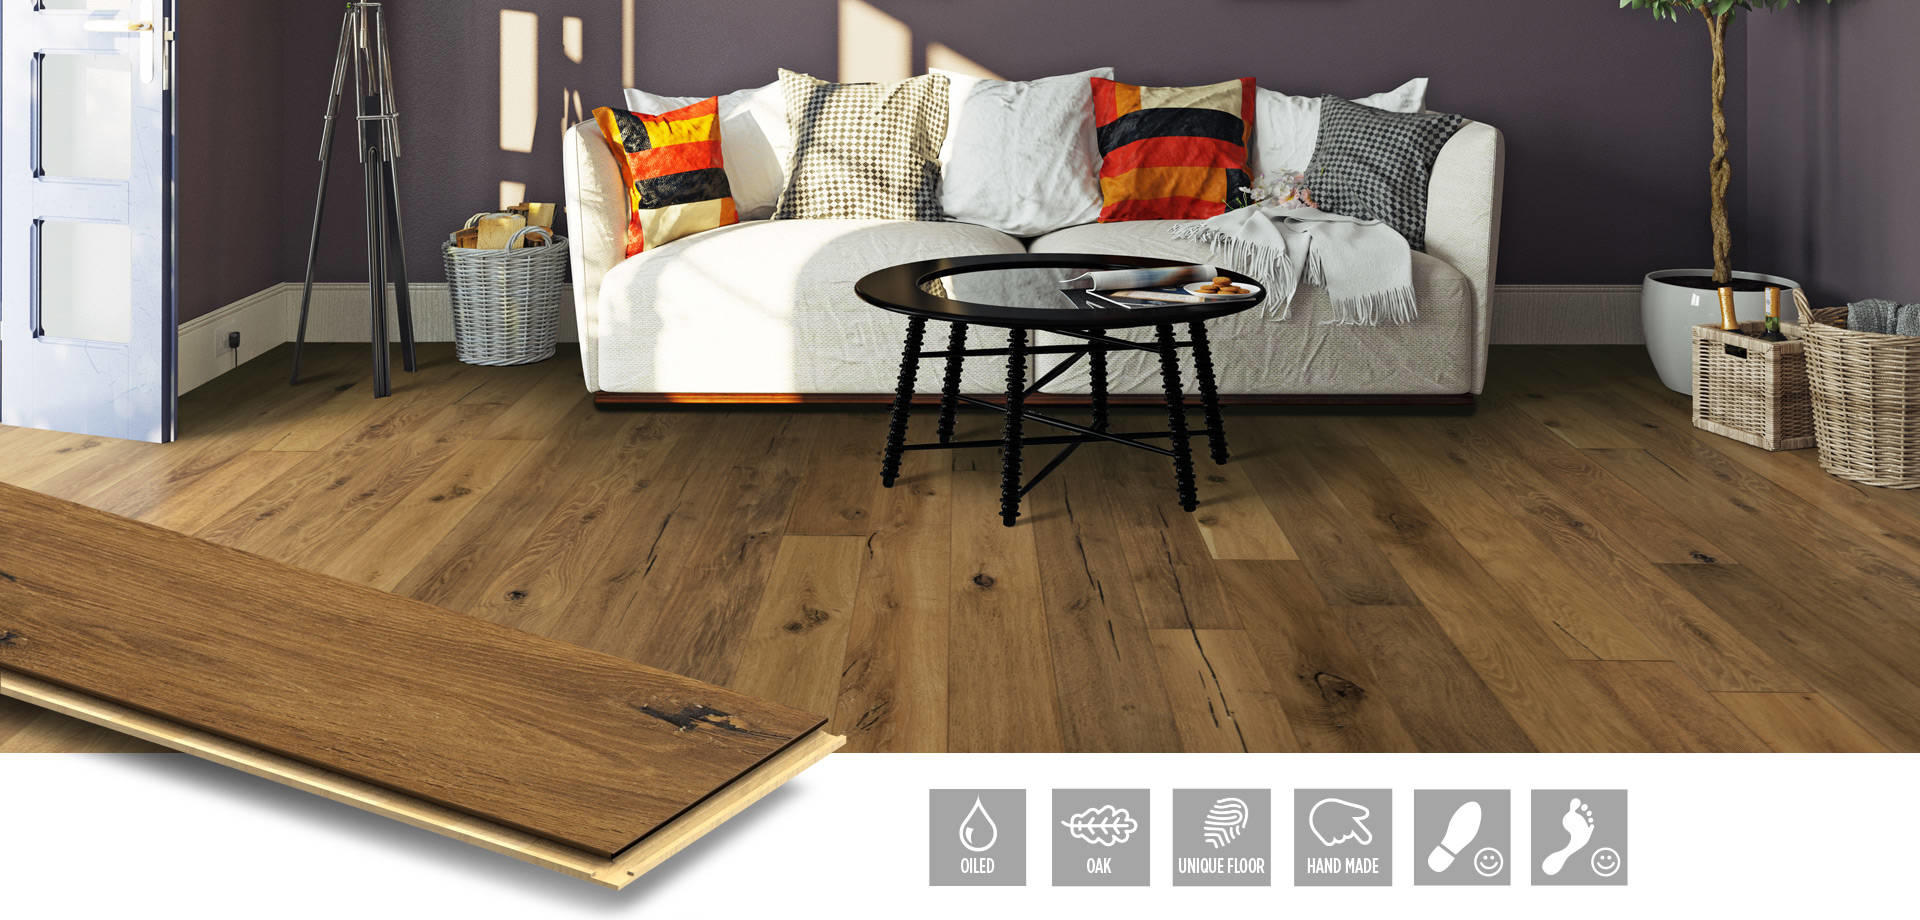 Oak Barrel - exklusivt parkettgolv från NQD Floors